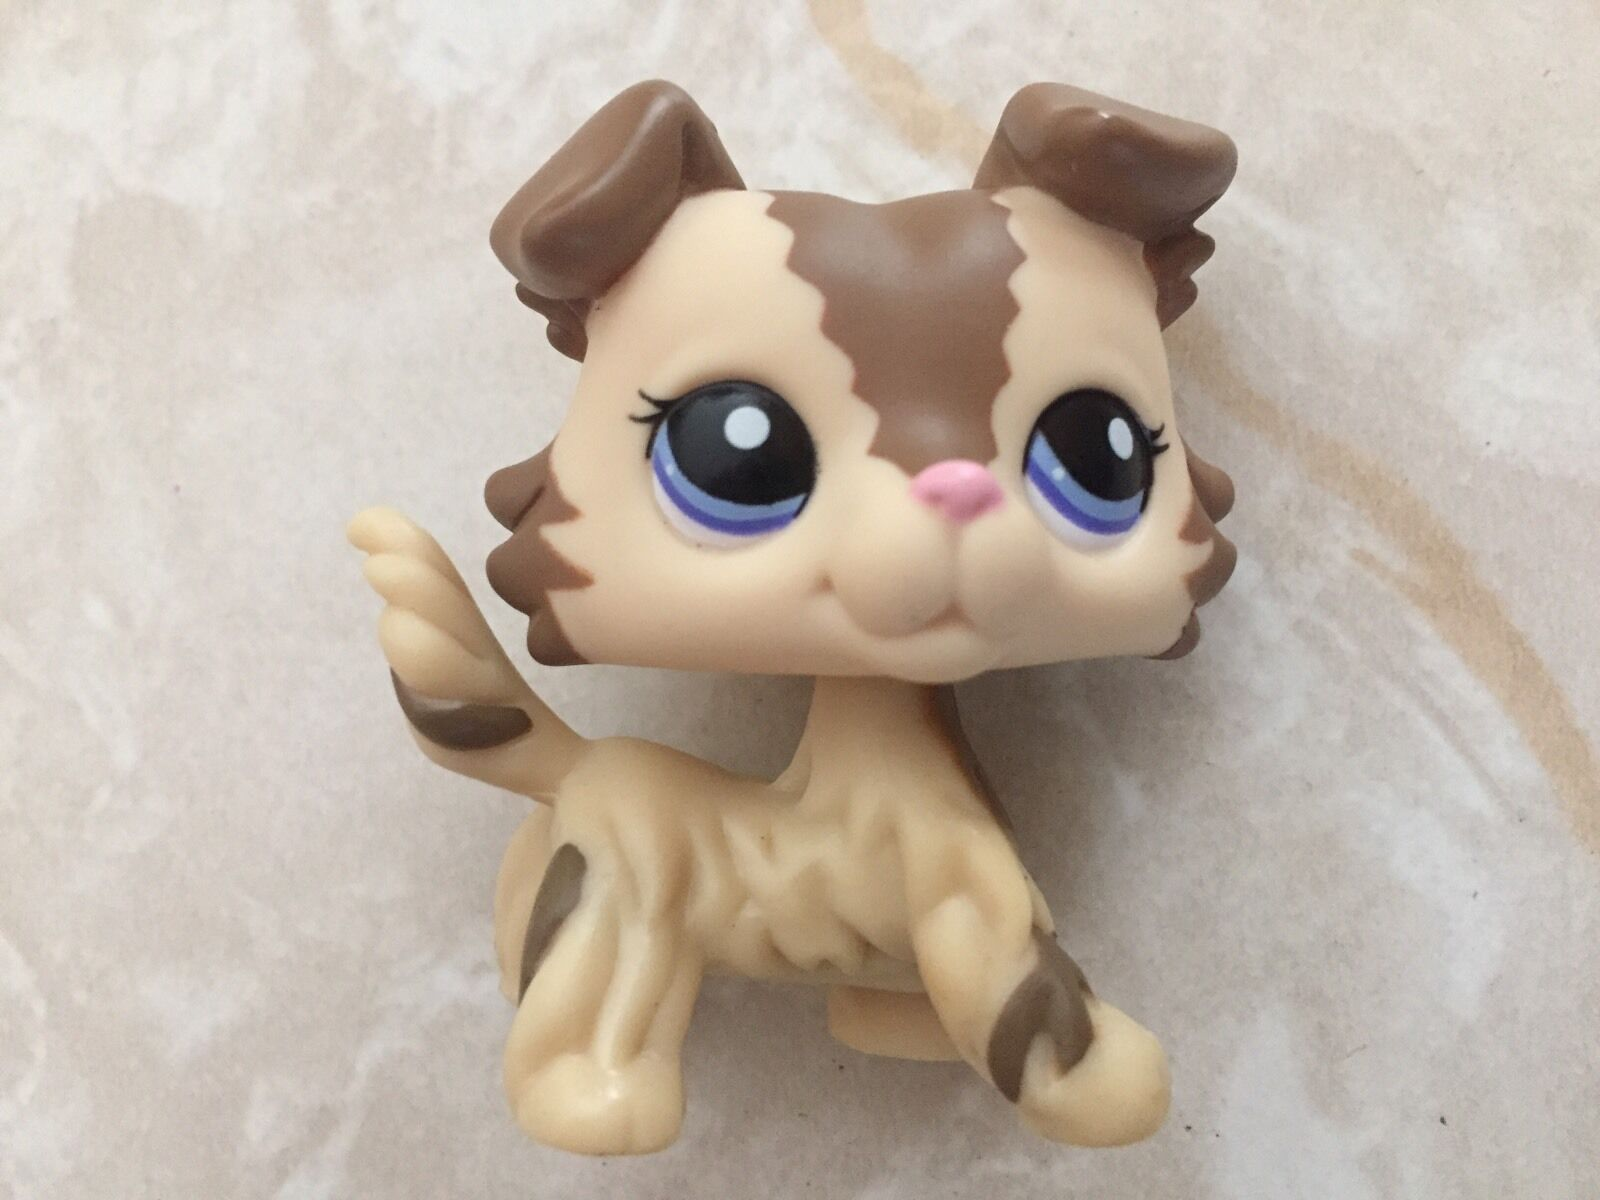 The LITTLEST PET SHOP MAGIC MOTION TREEHOUSE includes an Chipmunk, a WALKABLES Pet that's ready to climb, swing, and jump her way into your heart.